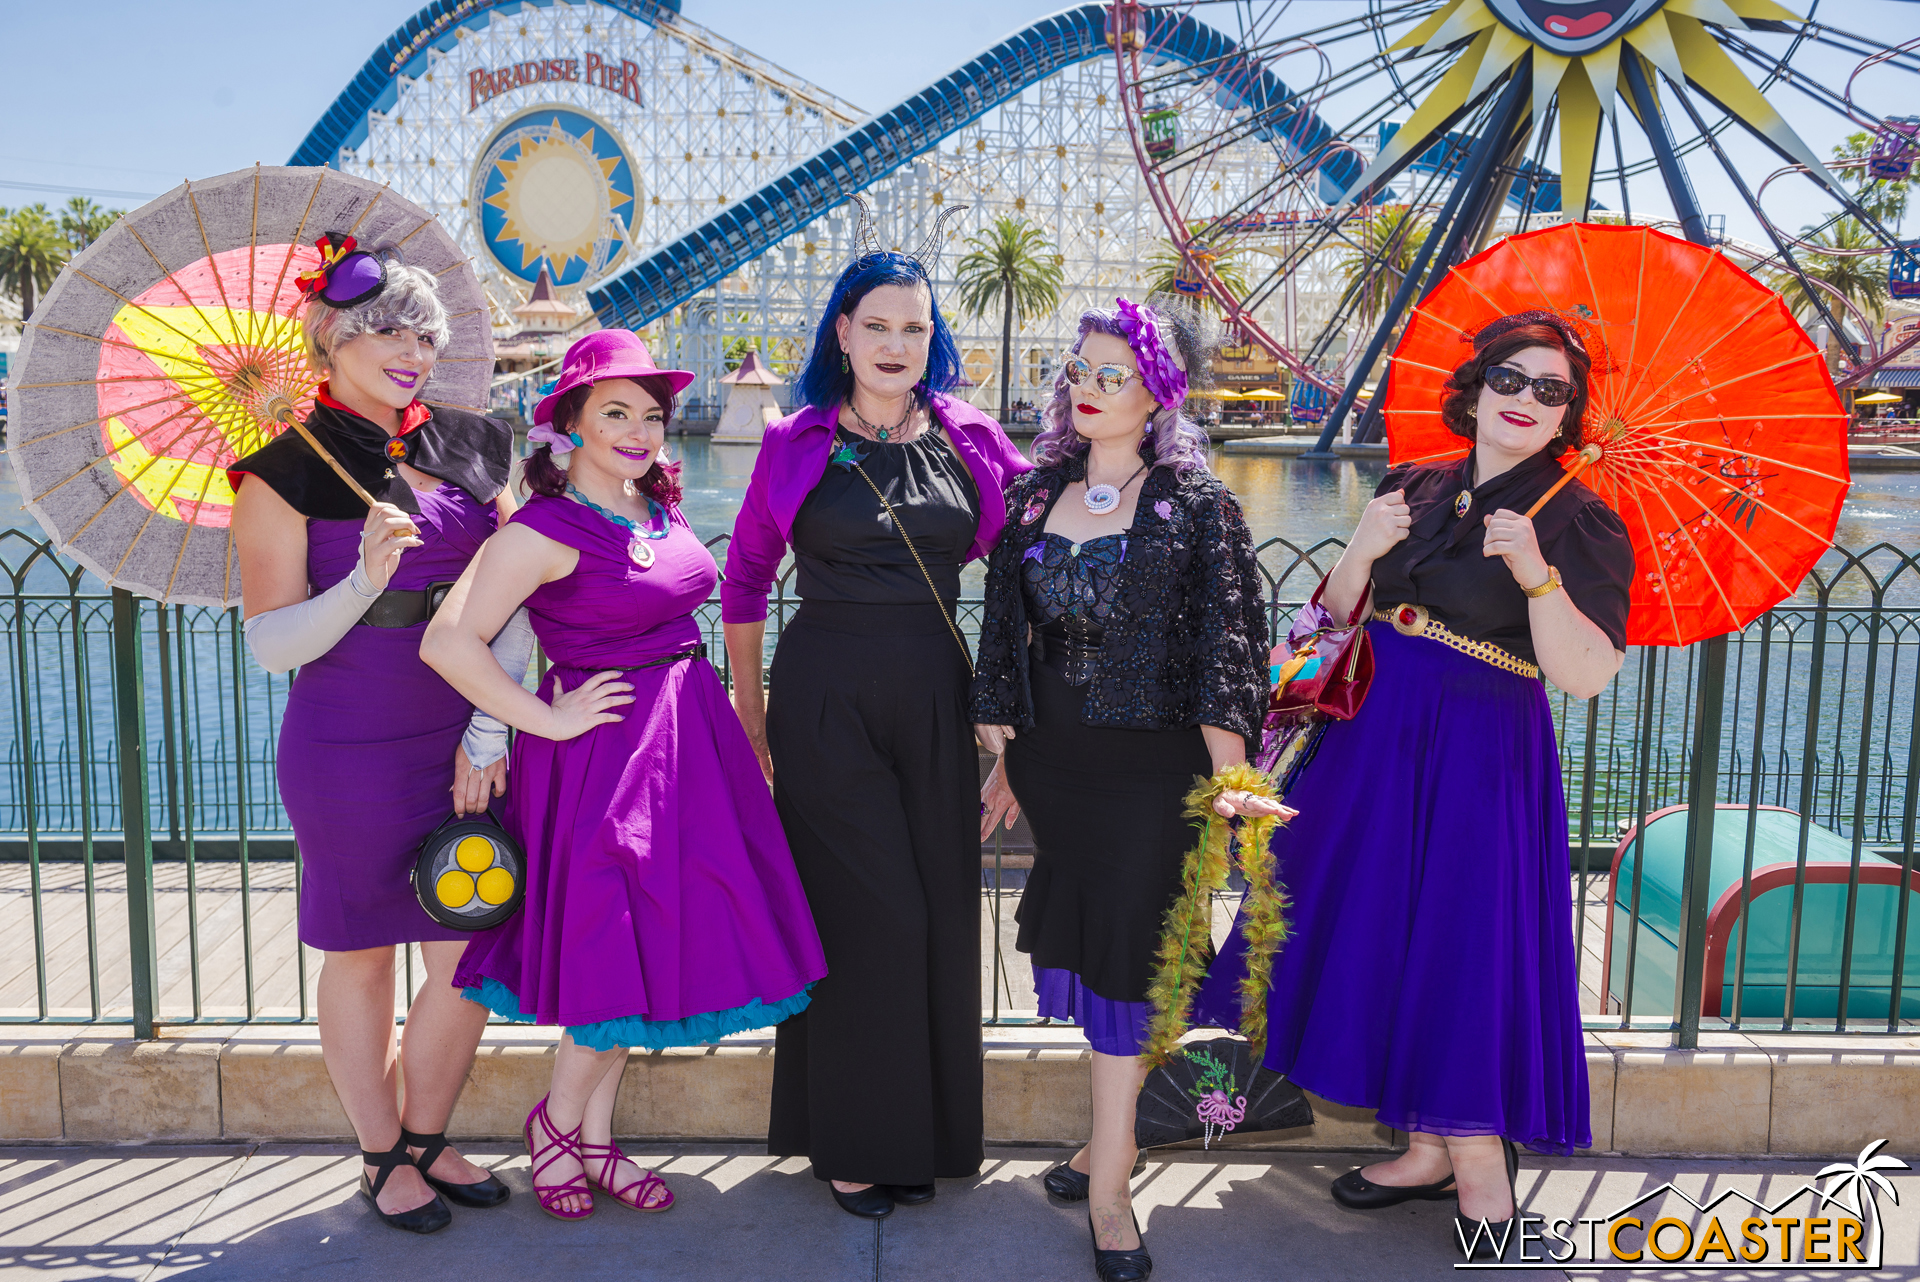 The Purple Villain Squad was pretty fantastic and a group I ran into several times on Sunday. Left to right: Emperor Zurg from  Toy Story , Governor Ratcliff from  Pocahontas , Hades from  Hercules , Ursula from  The Little Mermaid , and the Evil Queen from  Snow White .